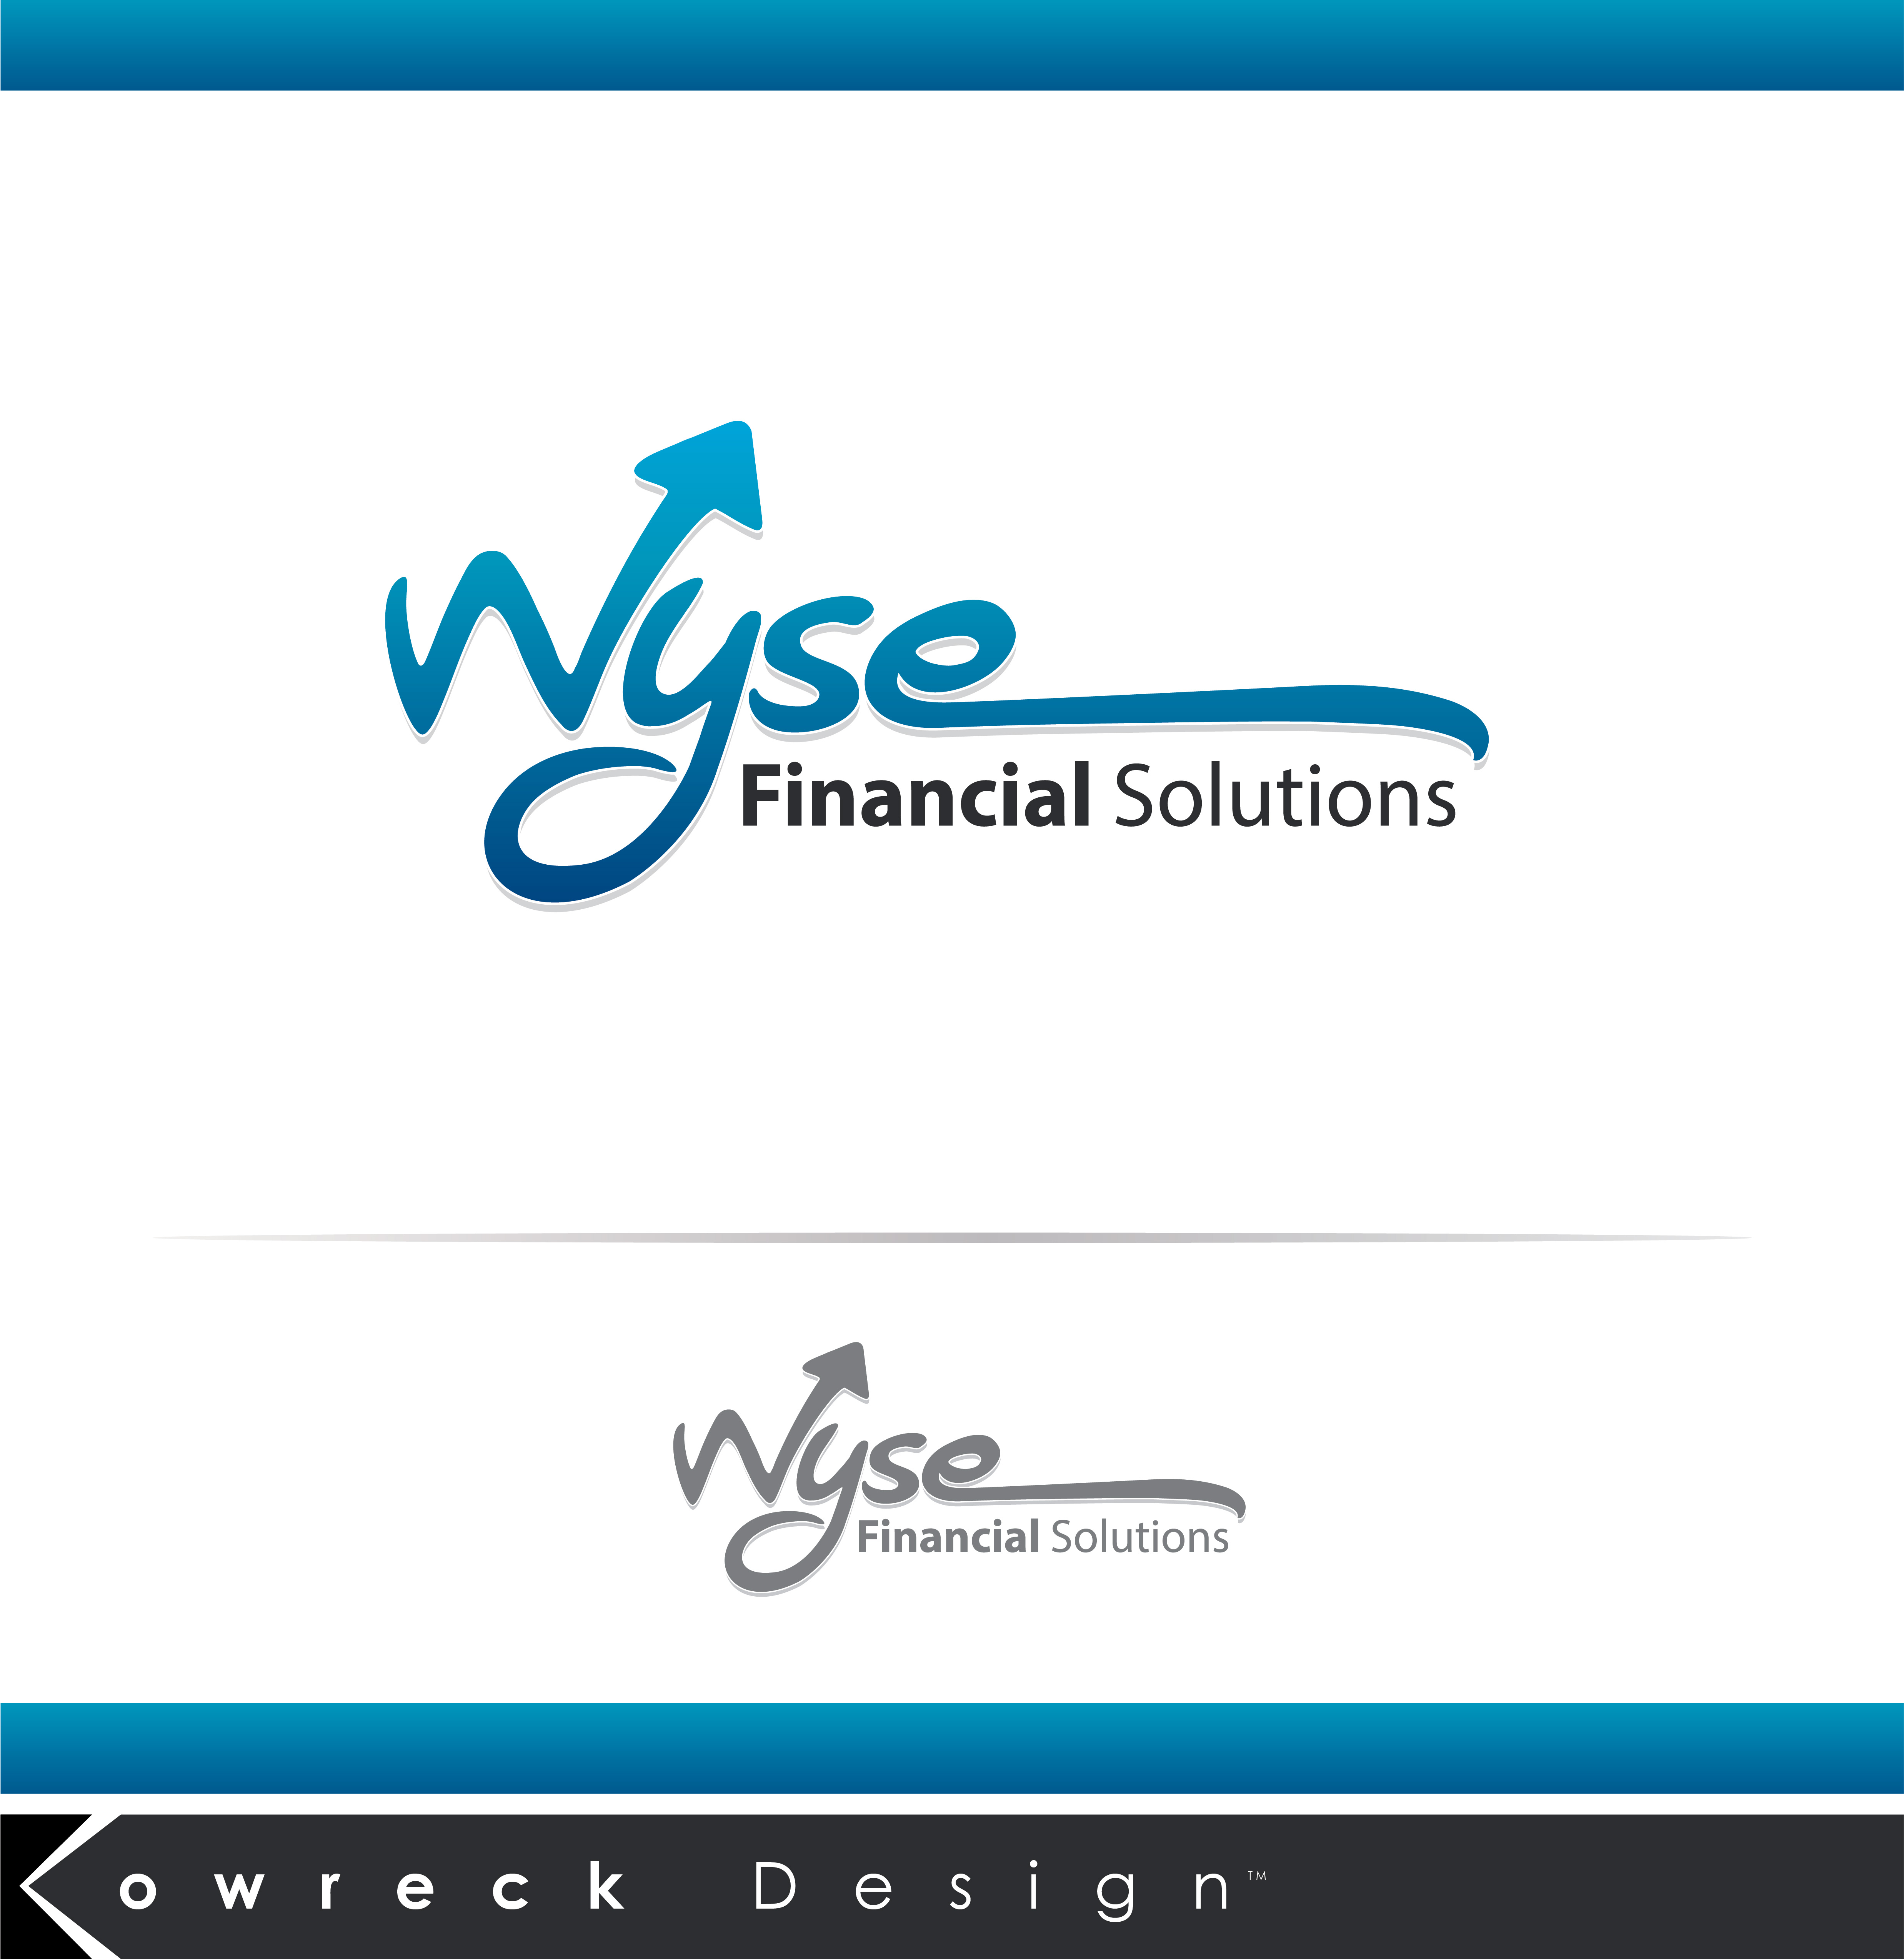 Logo Design by kowreck - Entry No. 45 in the Logo Design Contest Fun Logo Design for Wyse Financial Solutions.